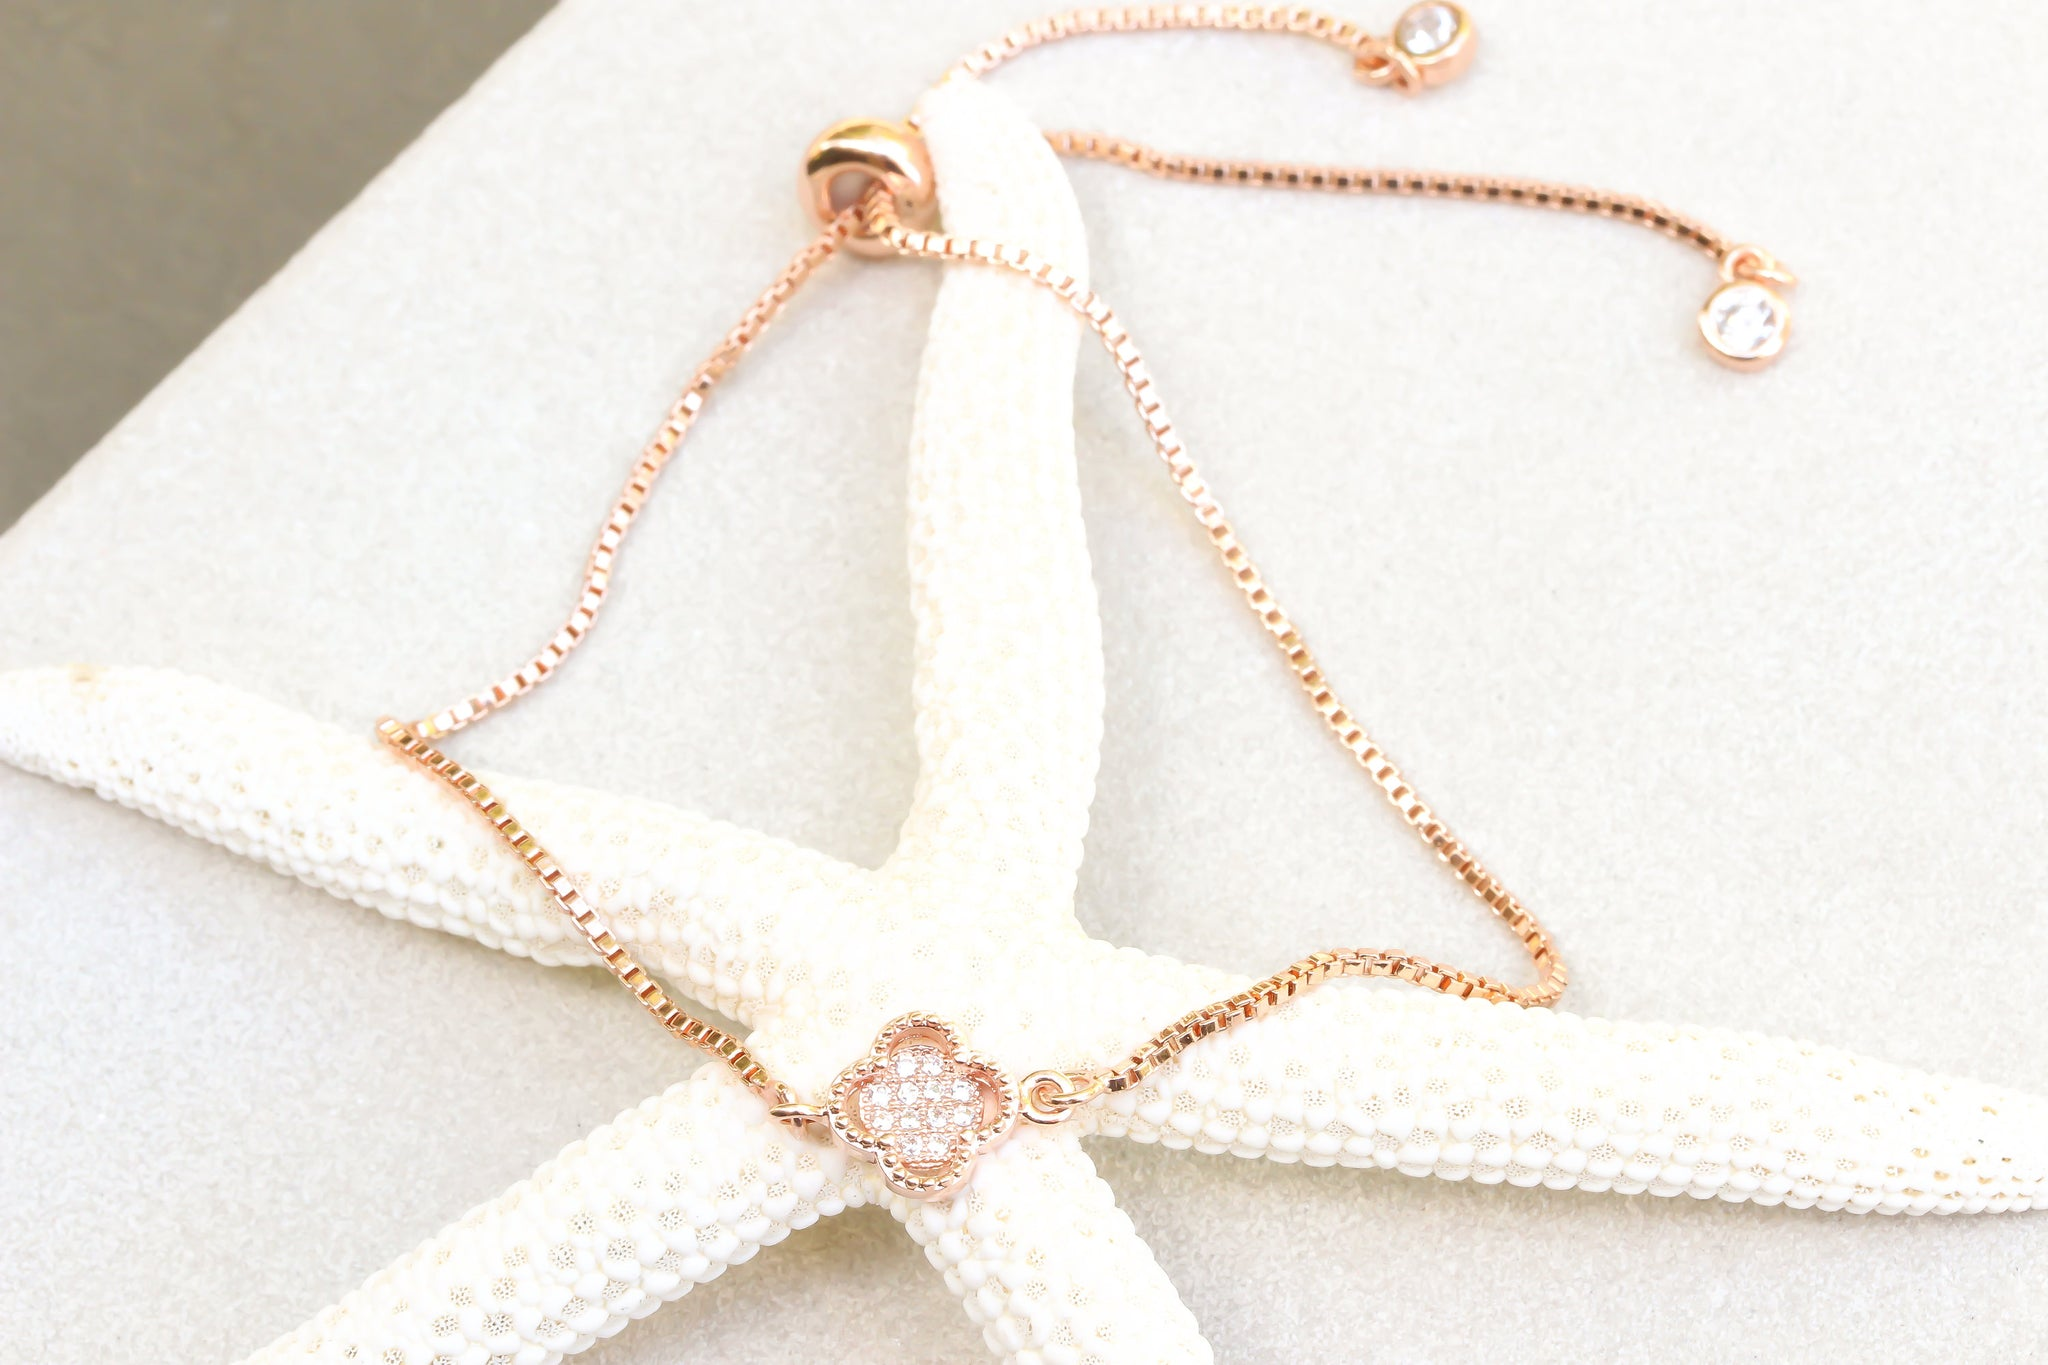 Rose Gold Clover Leaf Bracelet, Four leaf clover Bracelet, 4 leaf cloverleaf bracelet, Gold flower bracelet, Good luck lucky flower bracelet - product_type] - Beautiz